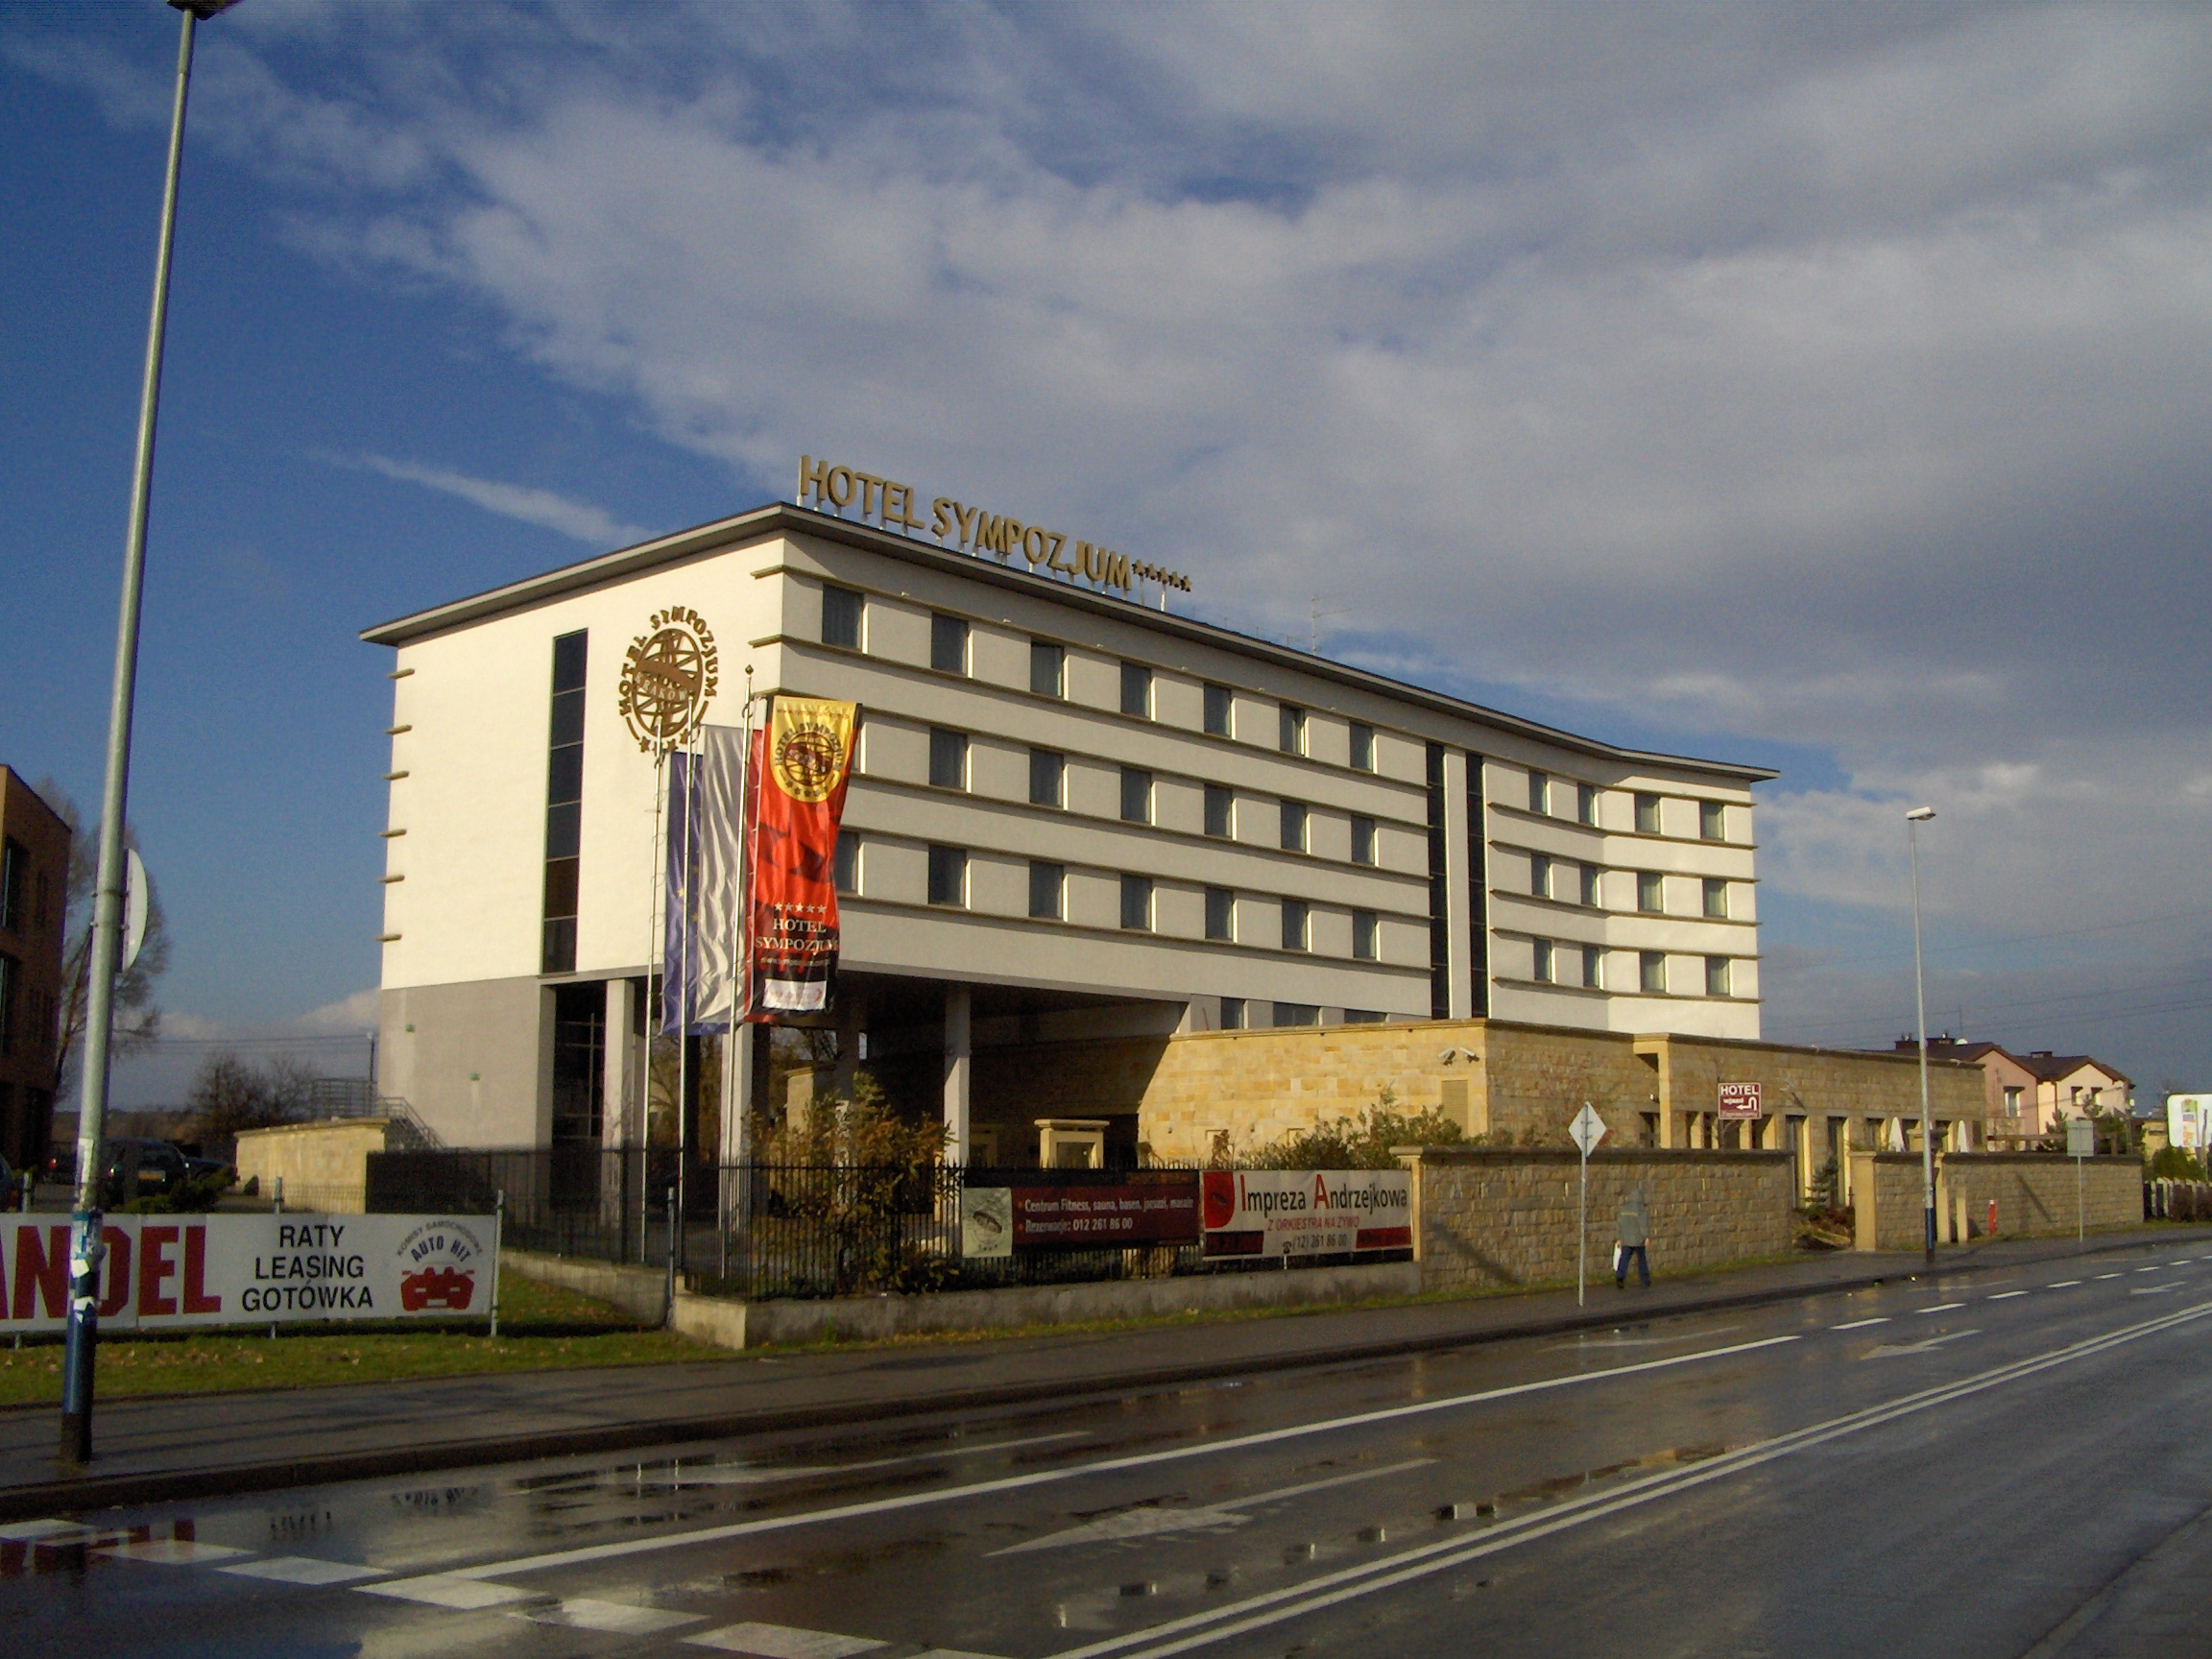 Hotel Sympozjum And Spa In Krakow